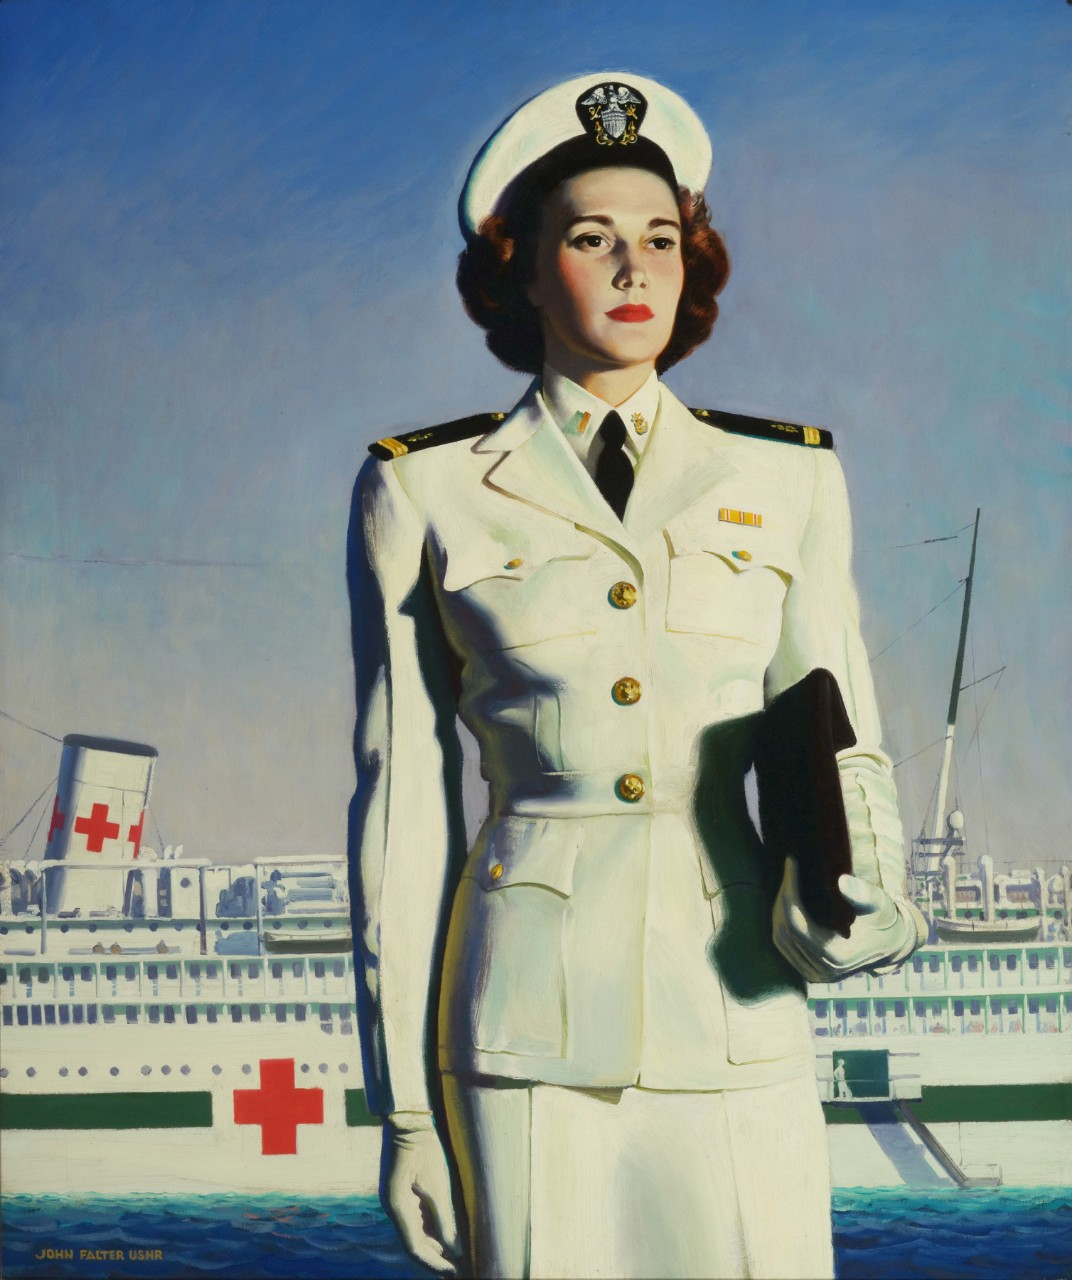 WAVE officer standing in front of a Hospital Ship